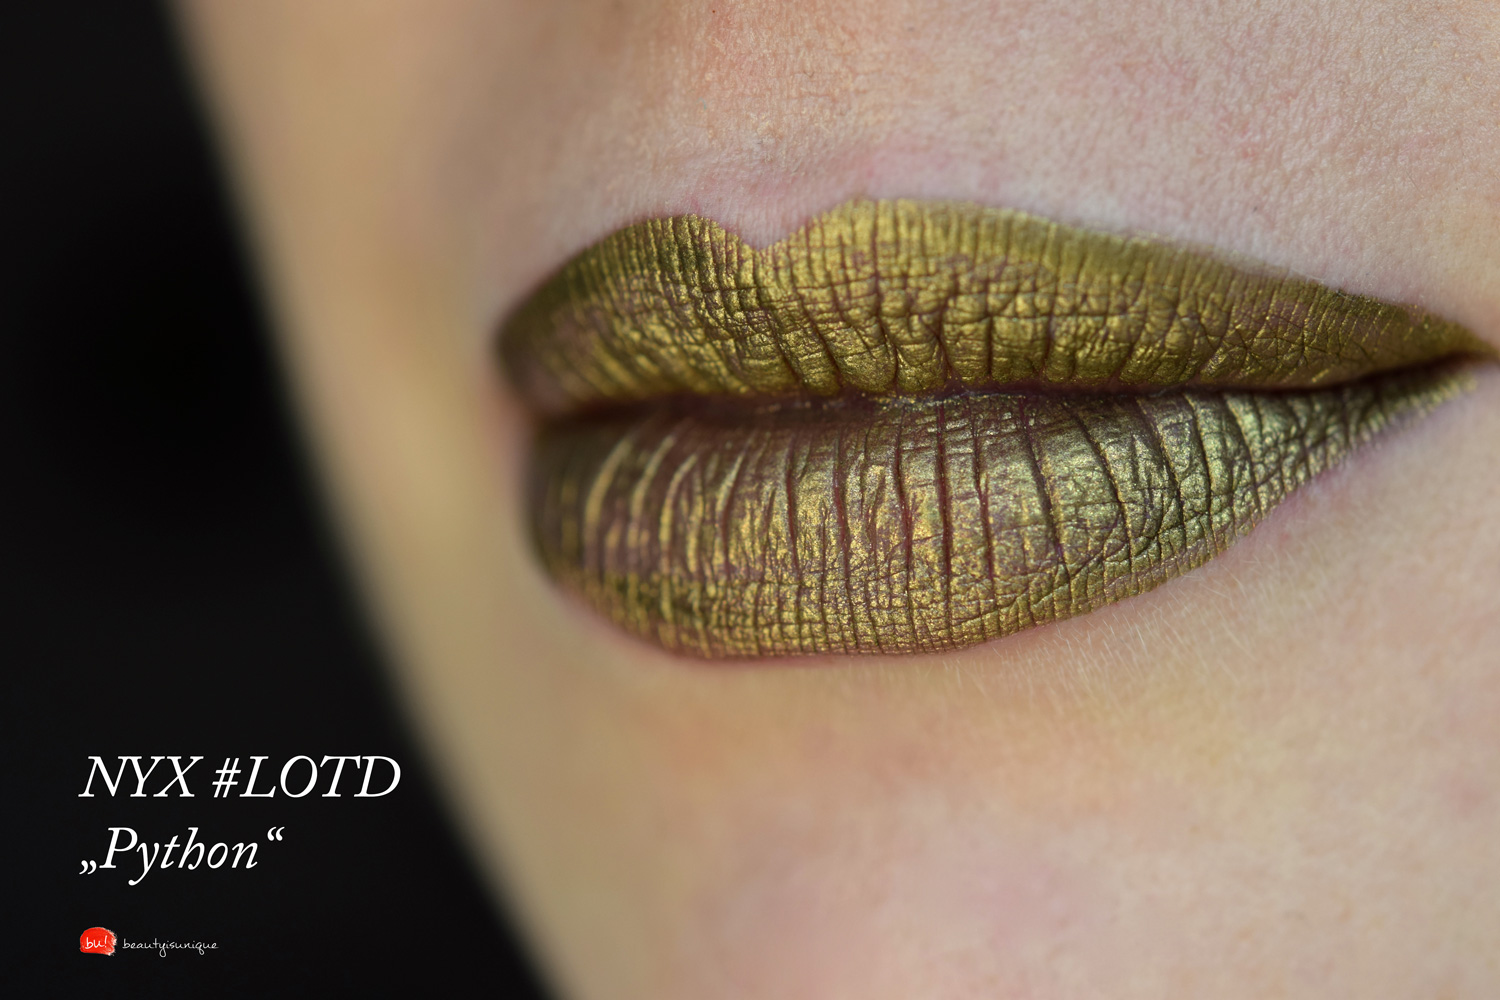 nyx-loth-python-lip-of-the-day